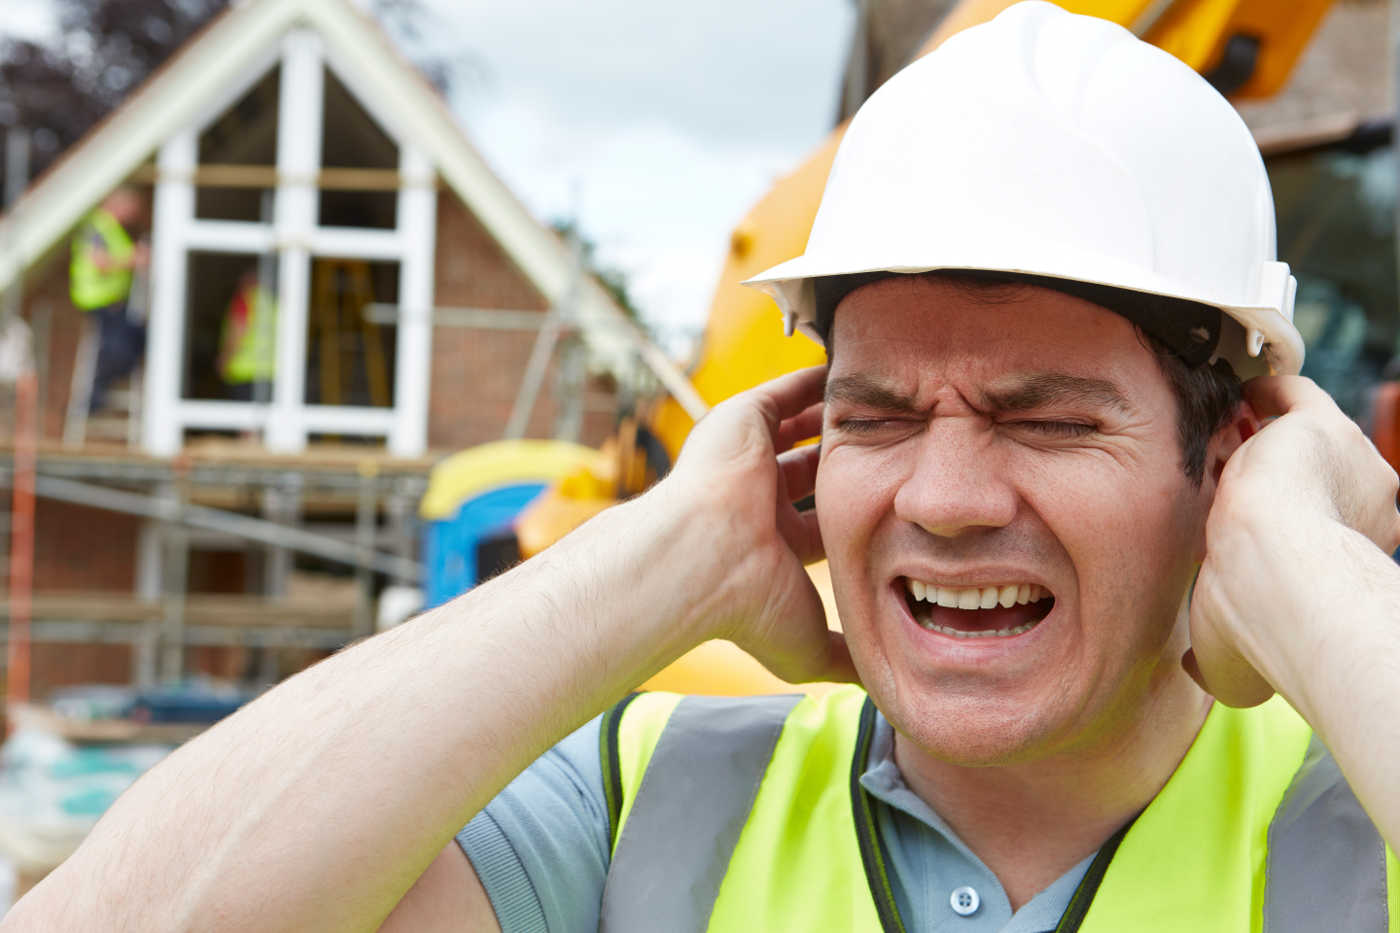 Construction Worker covering his ears and wincing in pain.